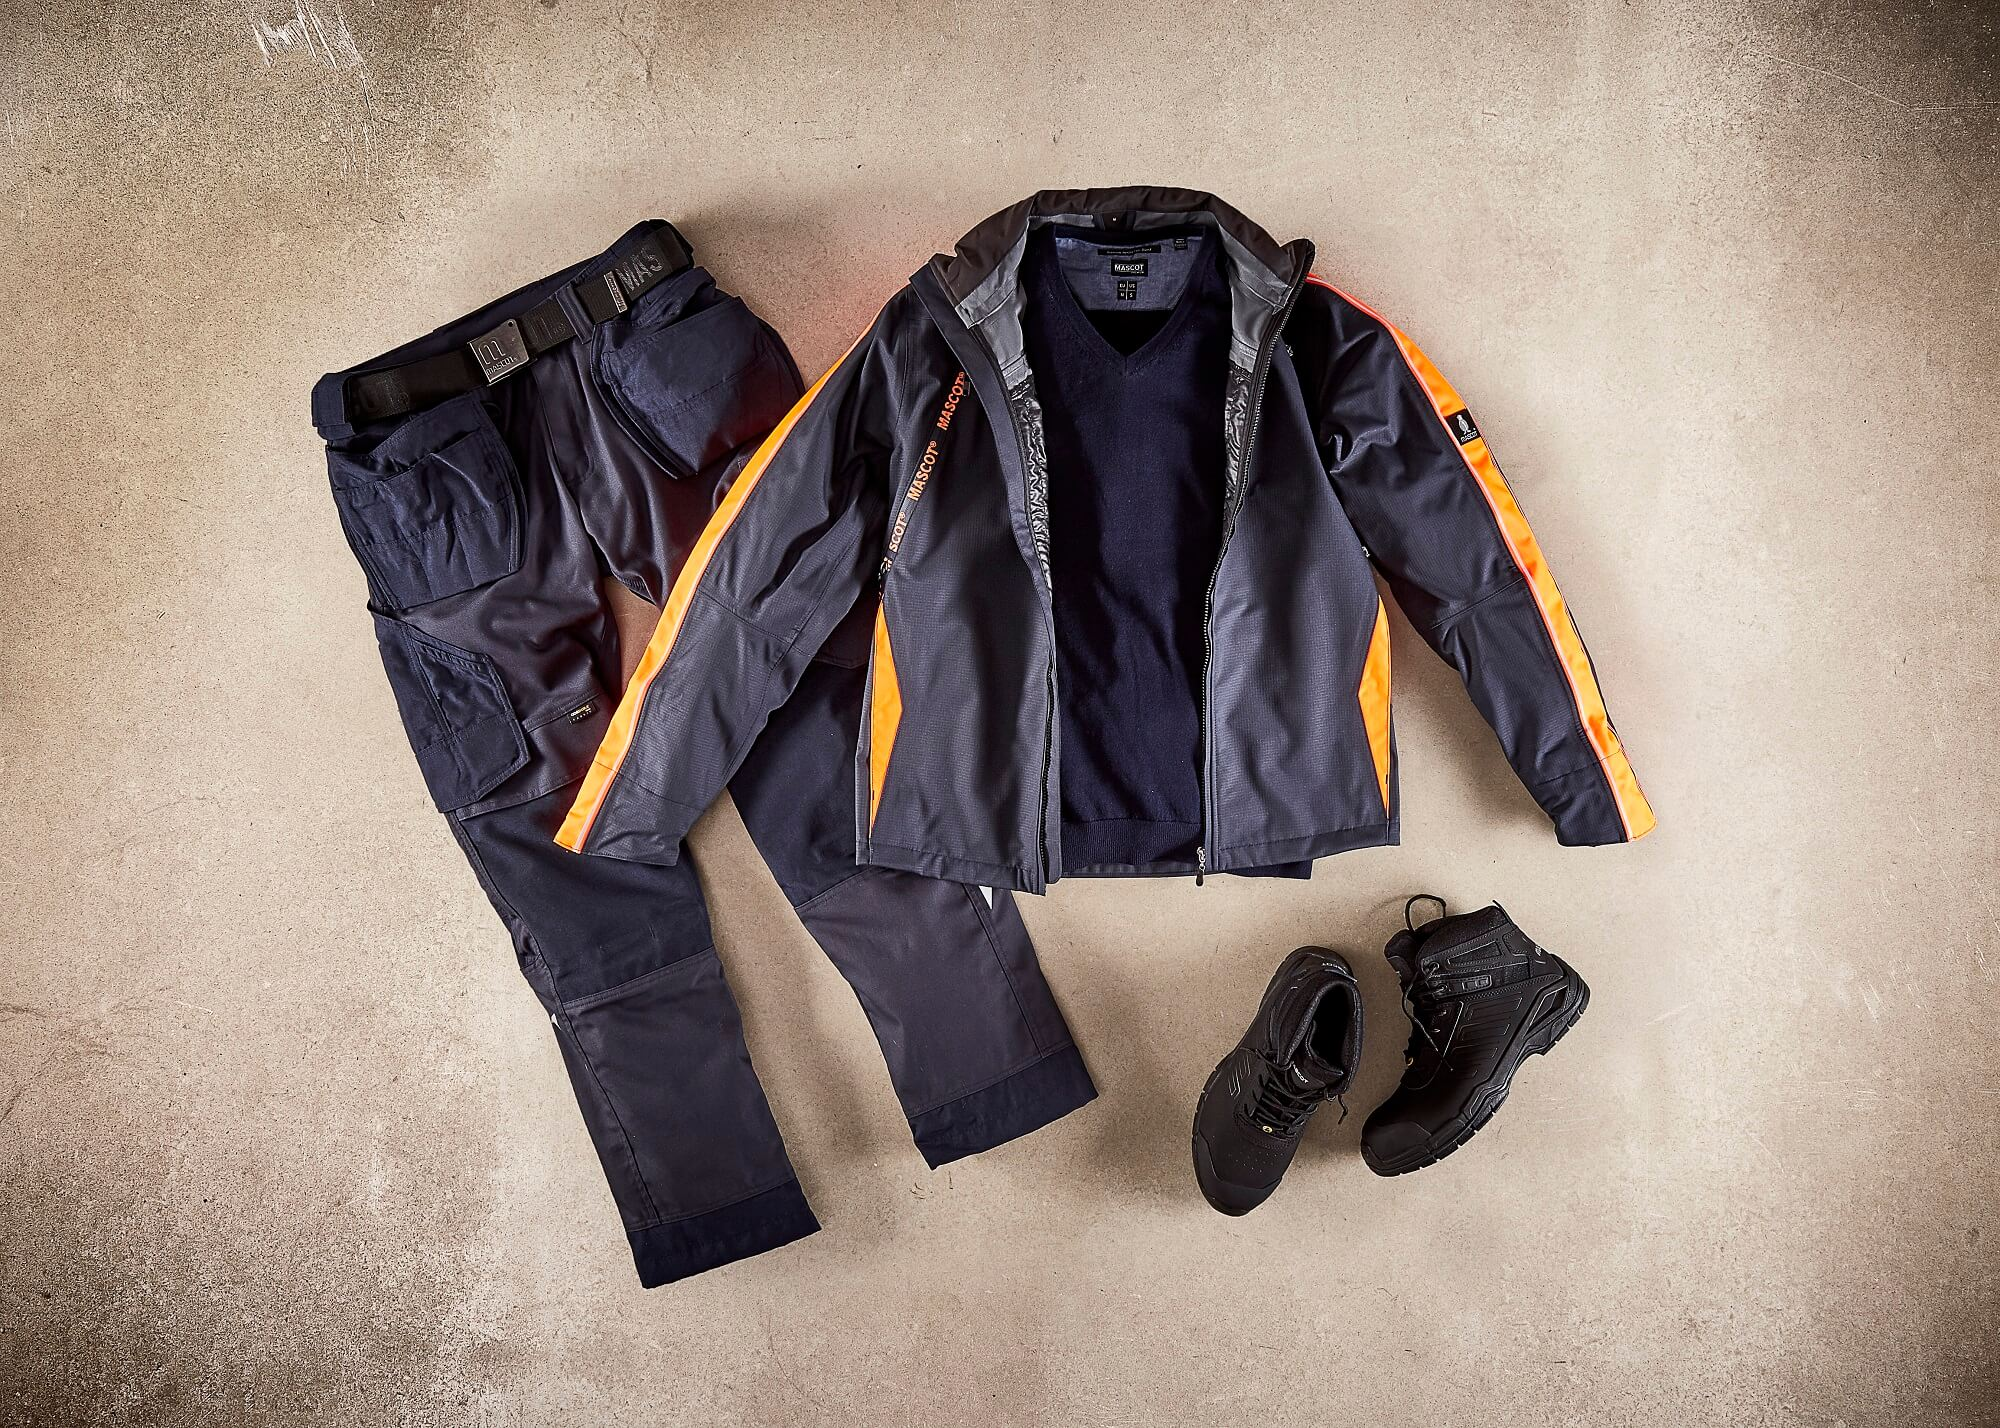 Navy - Outer Shell Jacket, Work Pants & Safety Boot - Collage